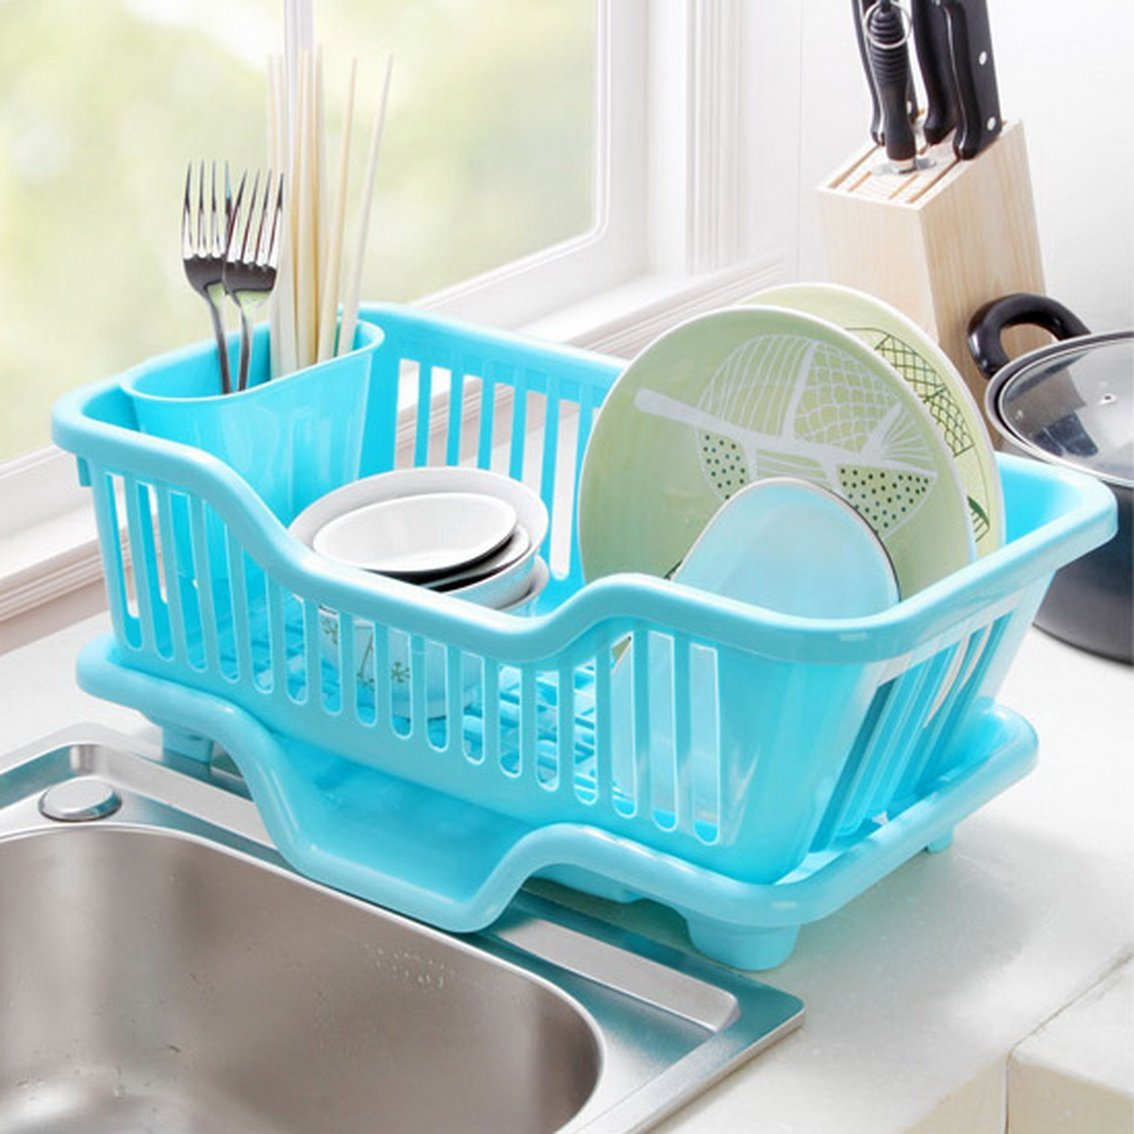 Cheap Corner Sink Dish Rack Find Corner Sink Dish Rack Deals On Line At Alibaba Com